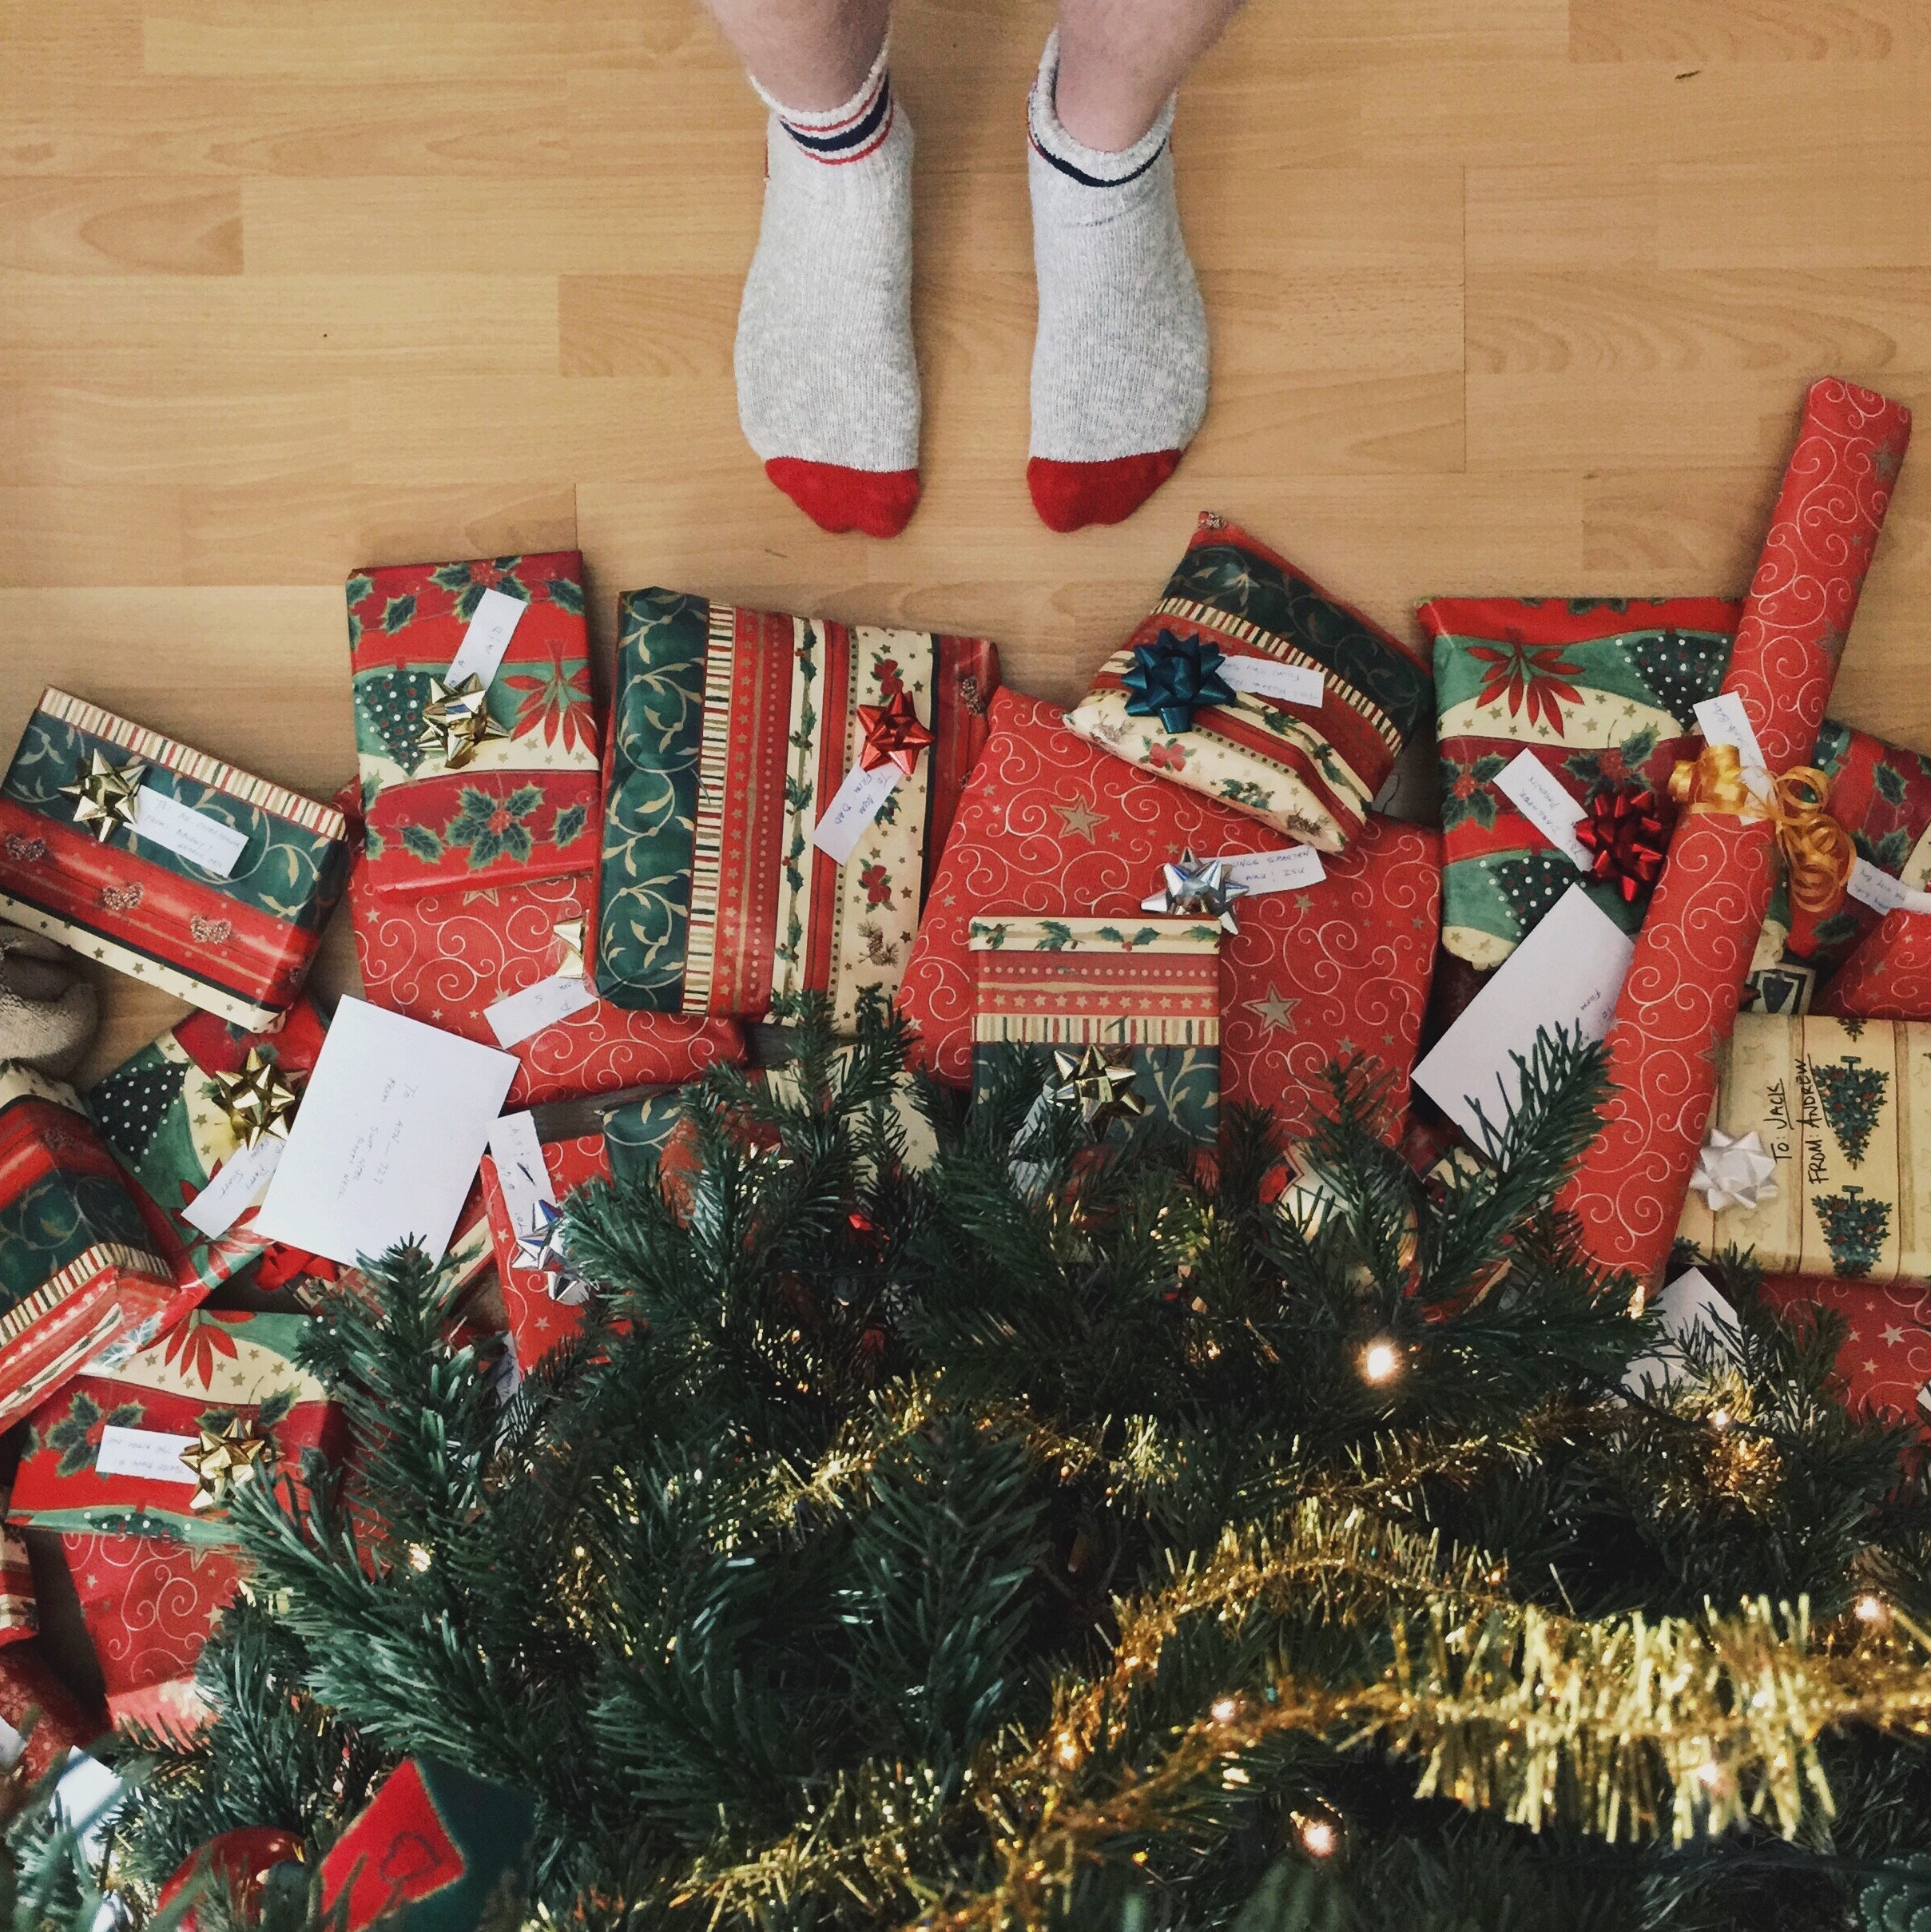 Find Your Housemate's Perfect Present With Our Secret Santa Flow Chart!